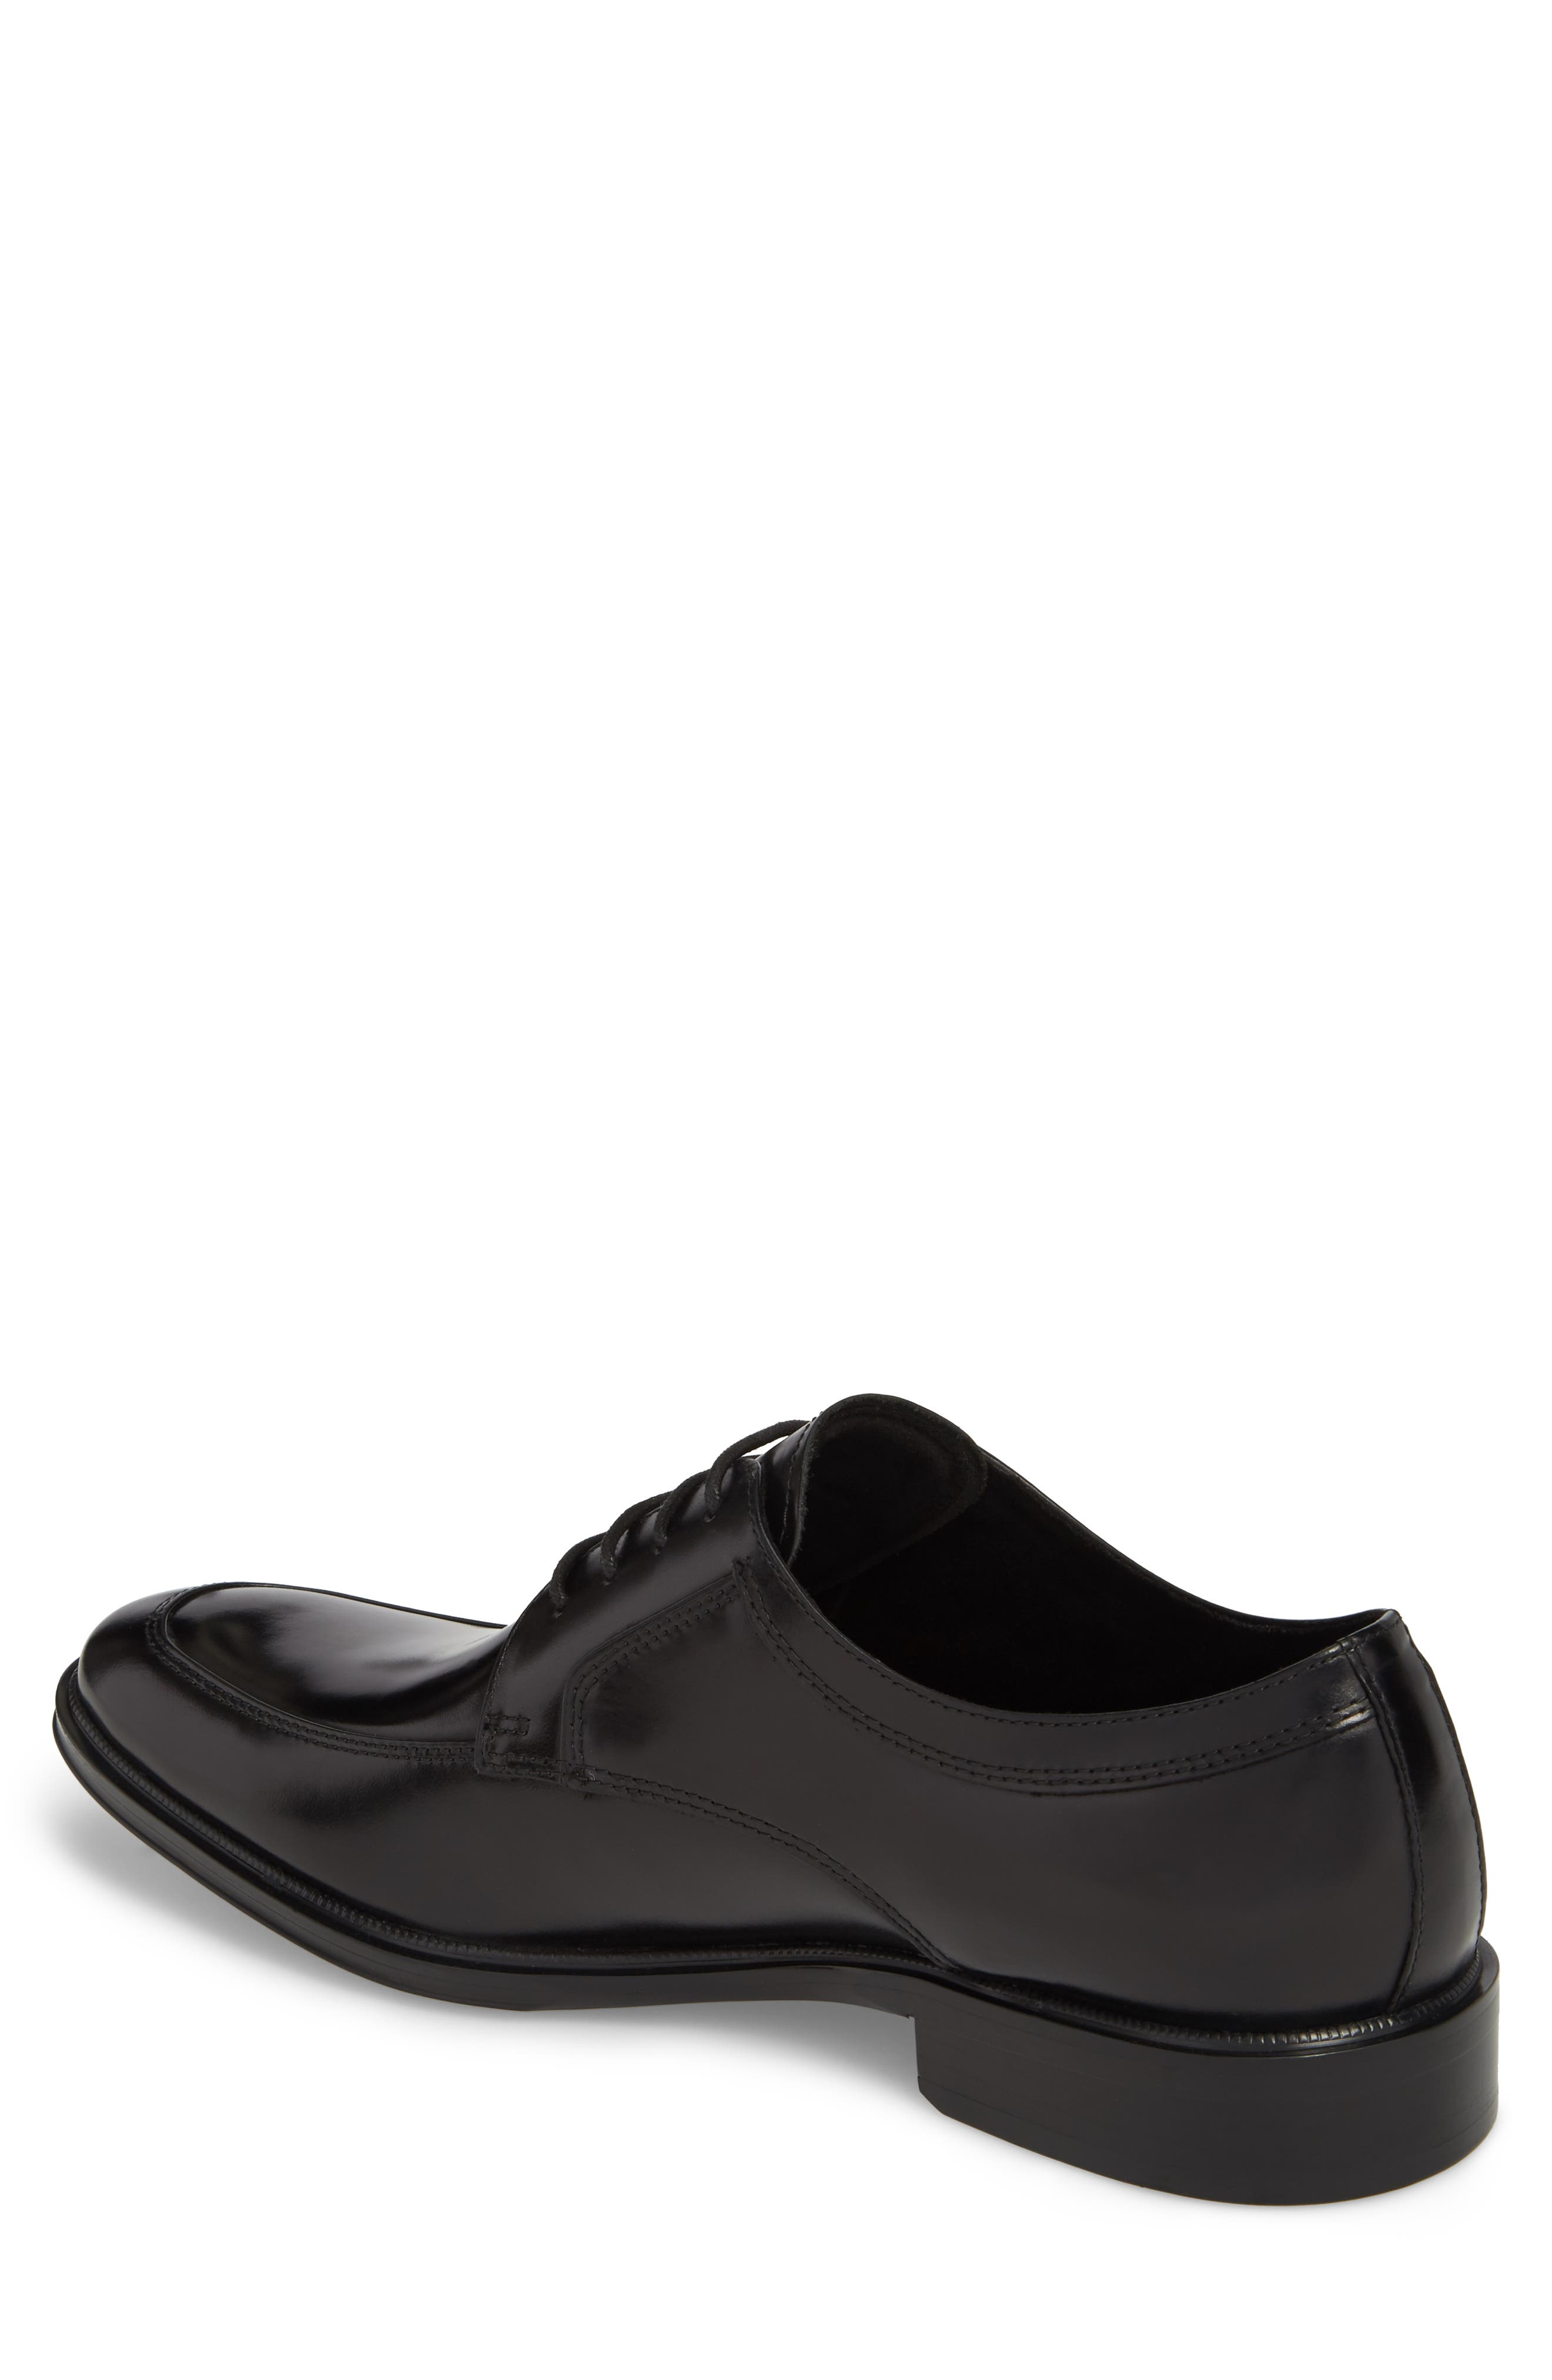 Tully Apron Toe Derby,                             Alternate thumbnail 2, color,                             BLACK LEATHER